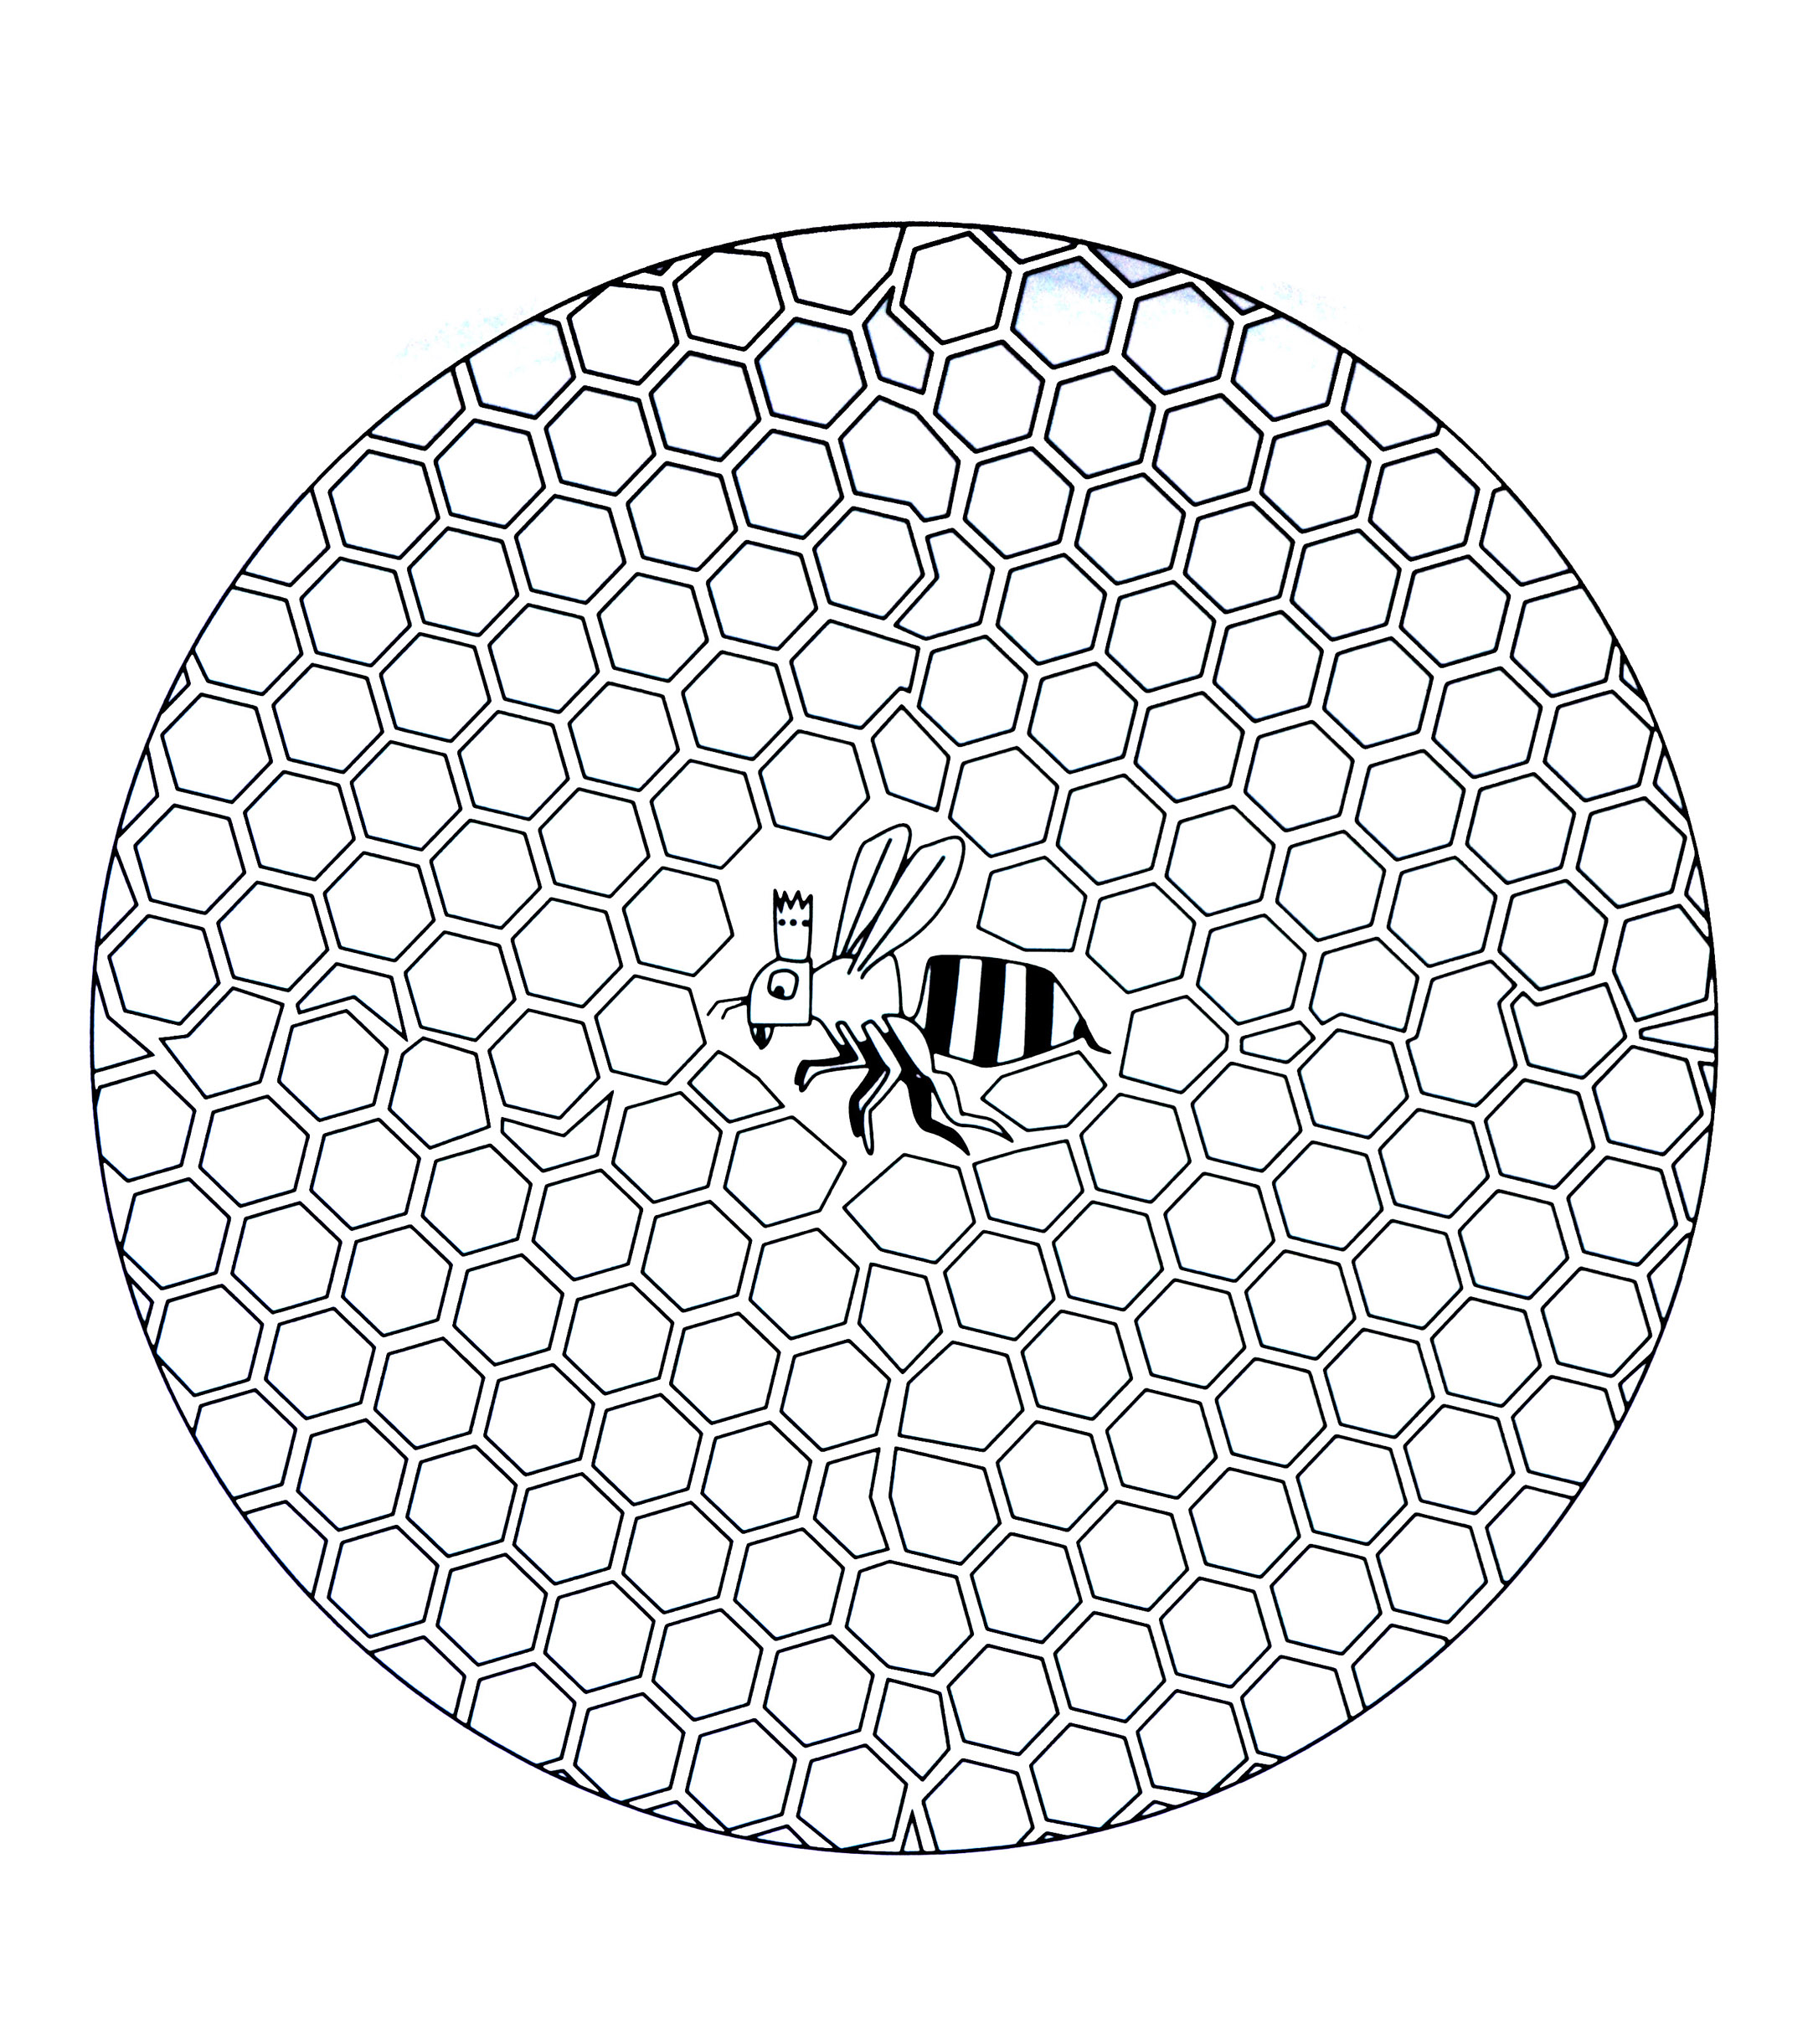 Free mandala to color : bee in hive